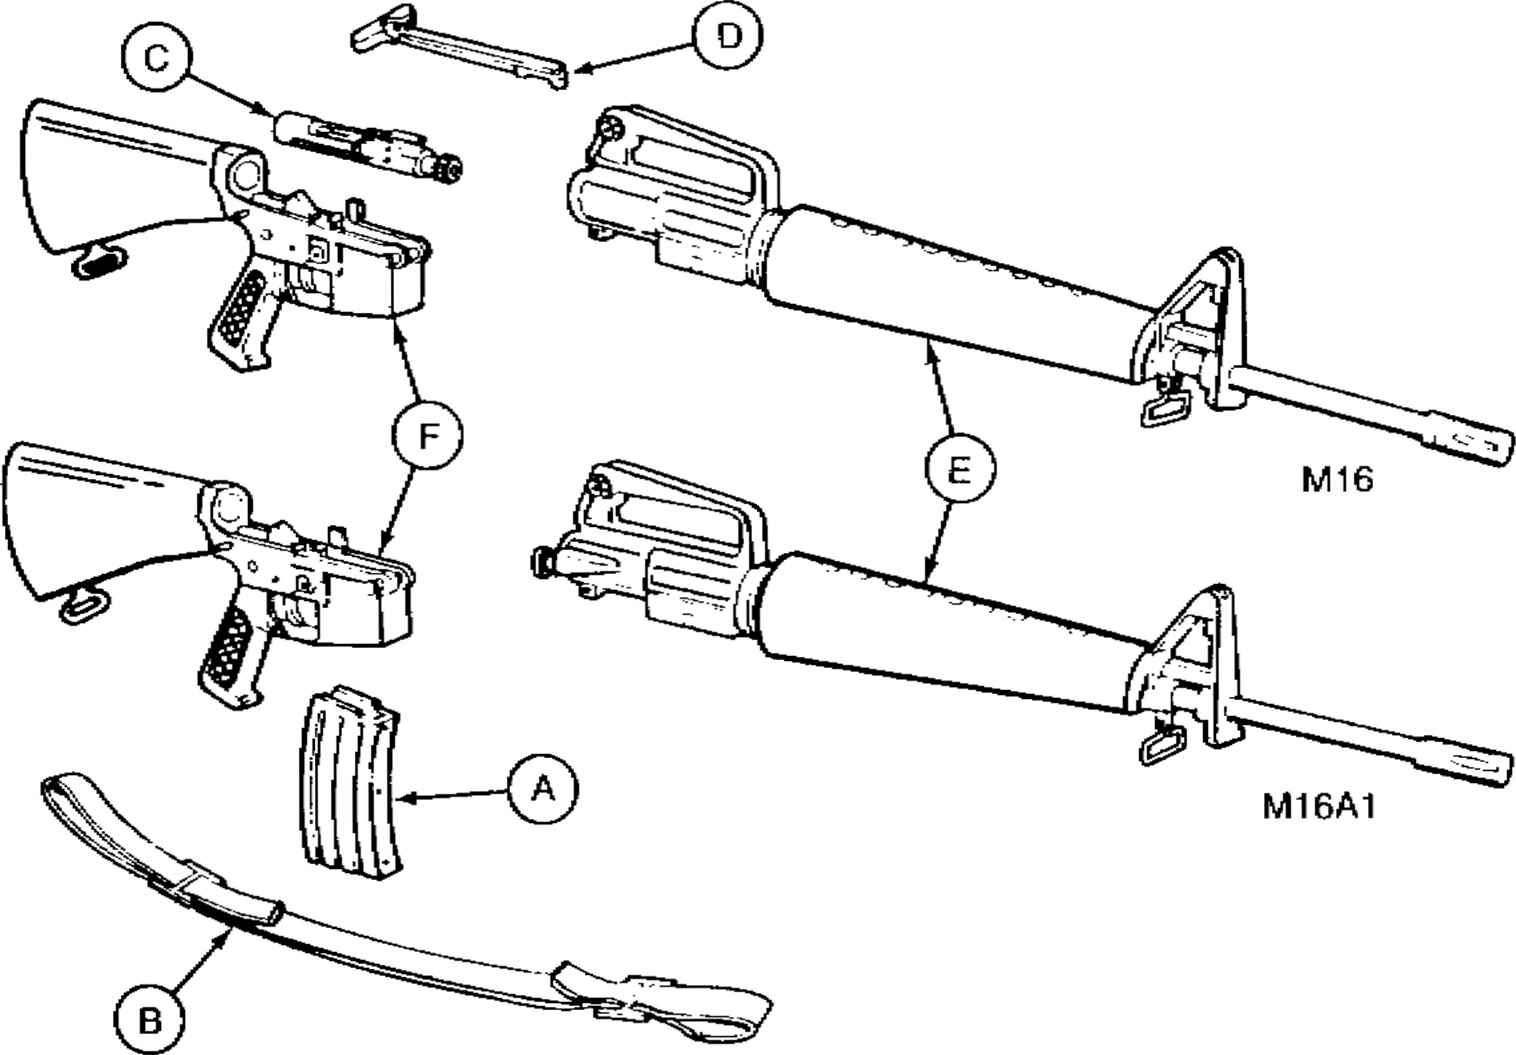 Diagram M16 Rifle